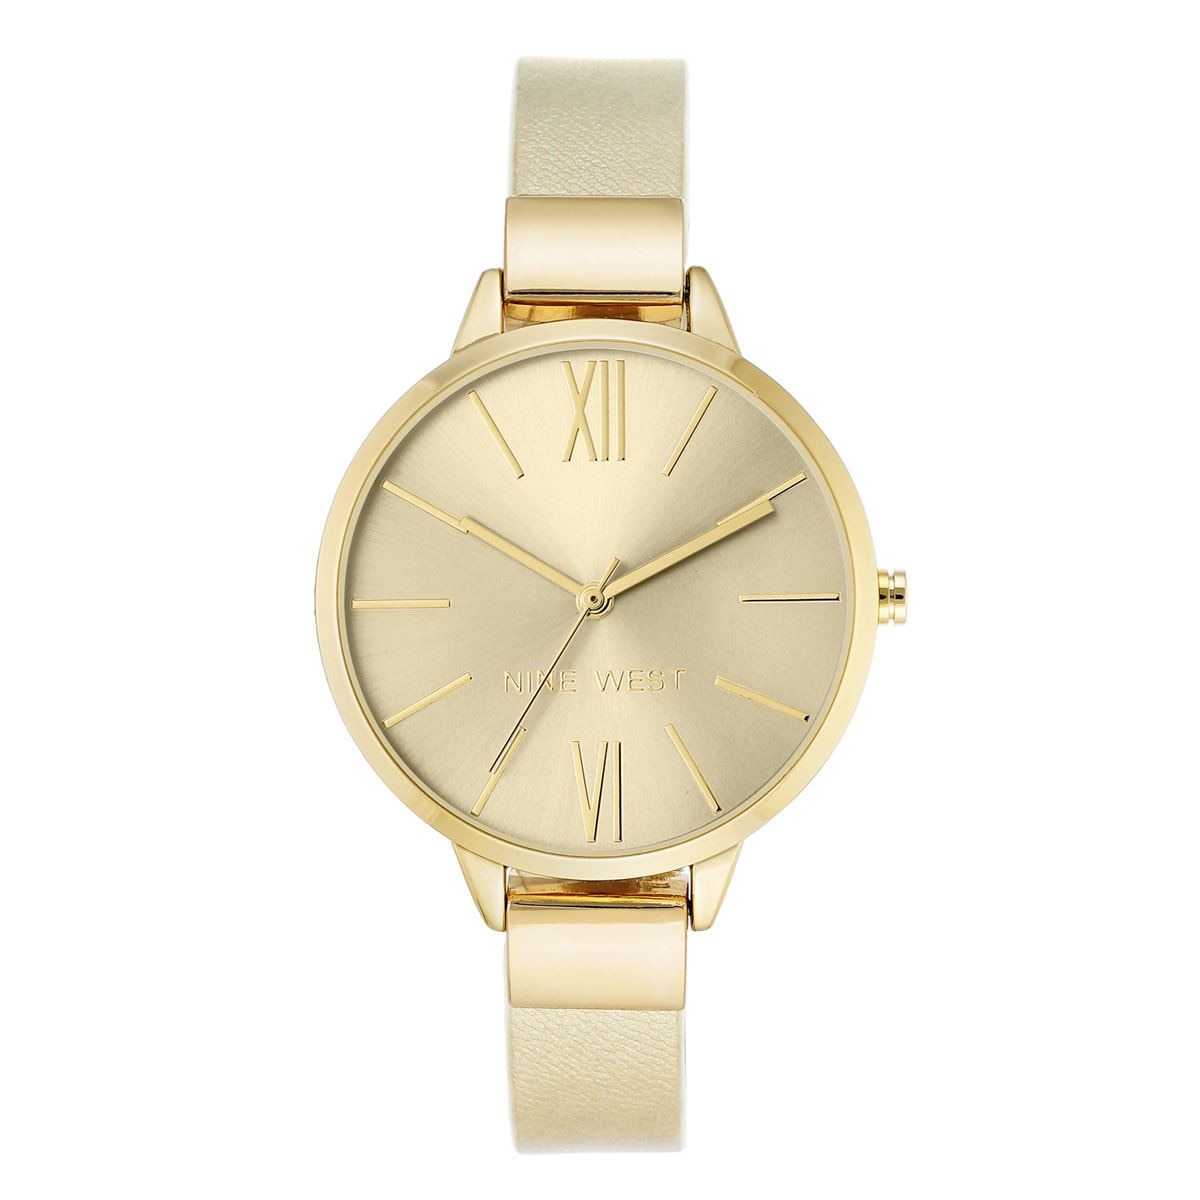 Reloj nine west dama nw2068chgd  - Sanborns